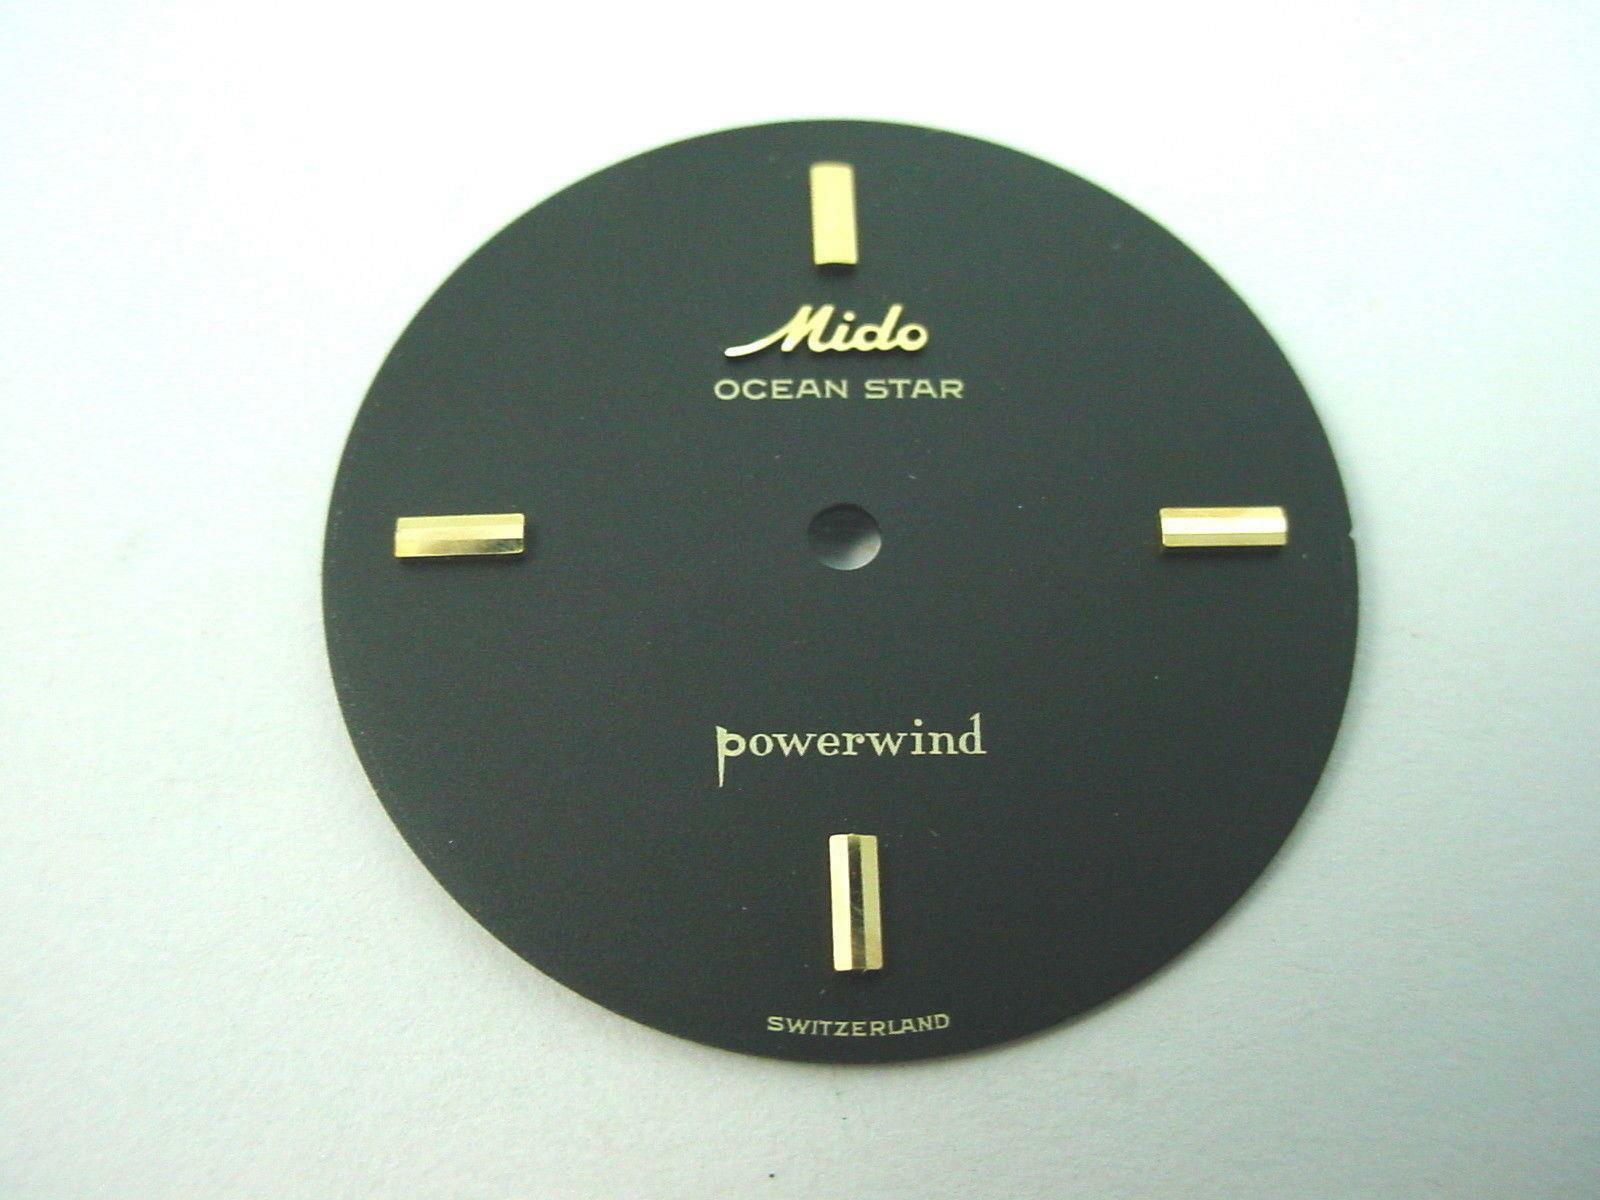 Mido Black 27.21mm Powerwind Ocean Star Watch Dial Vintage Gold Stick Markers